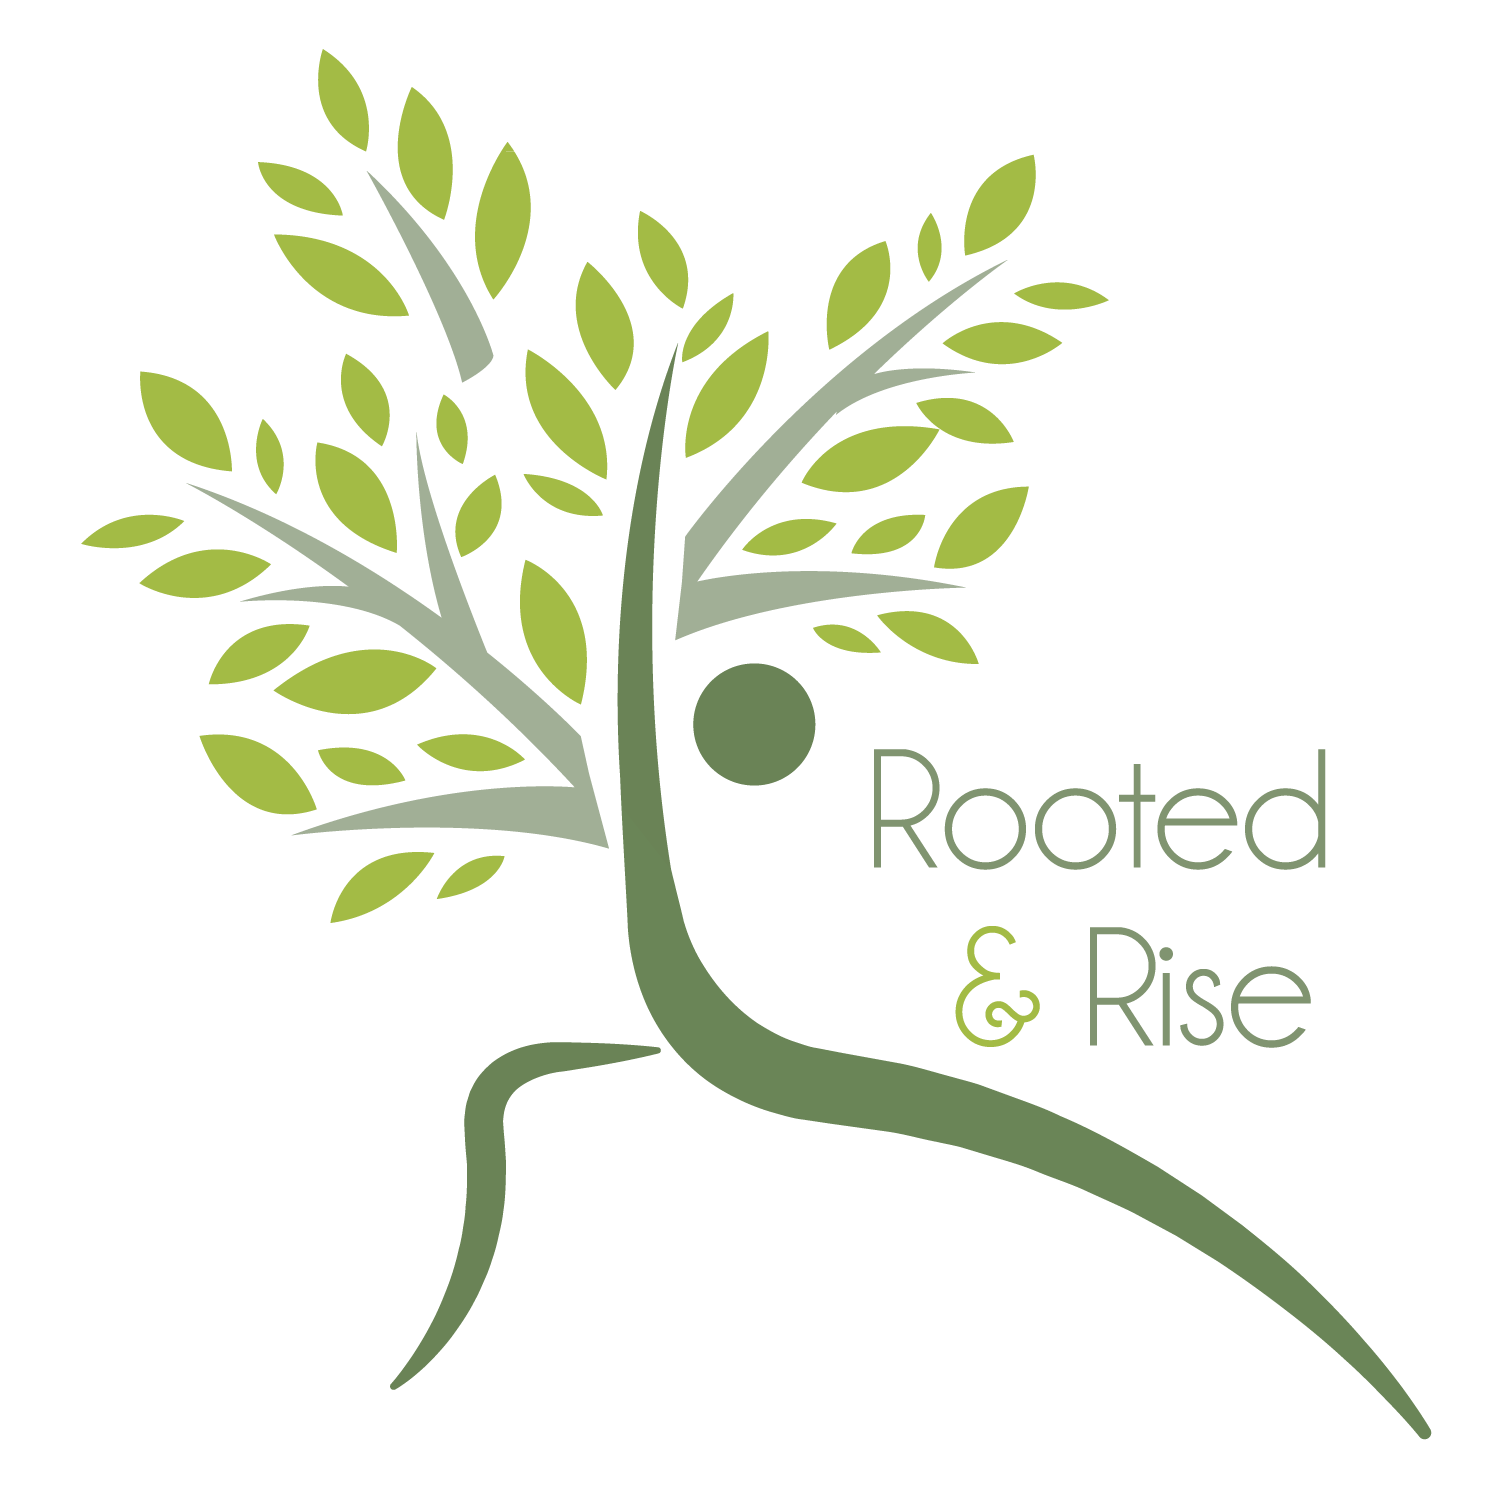 Rooted & Rise logo